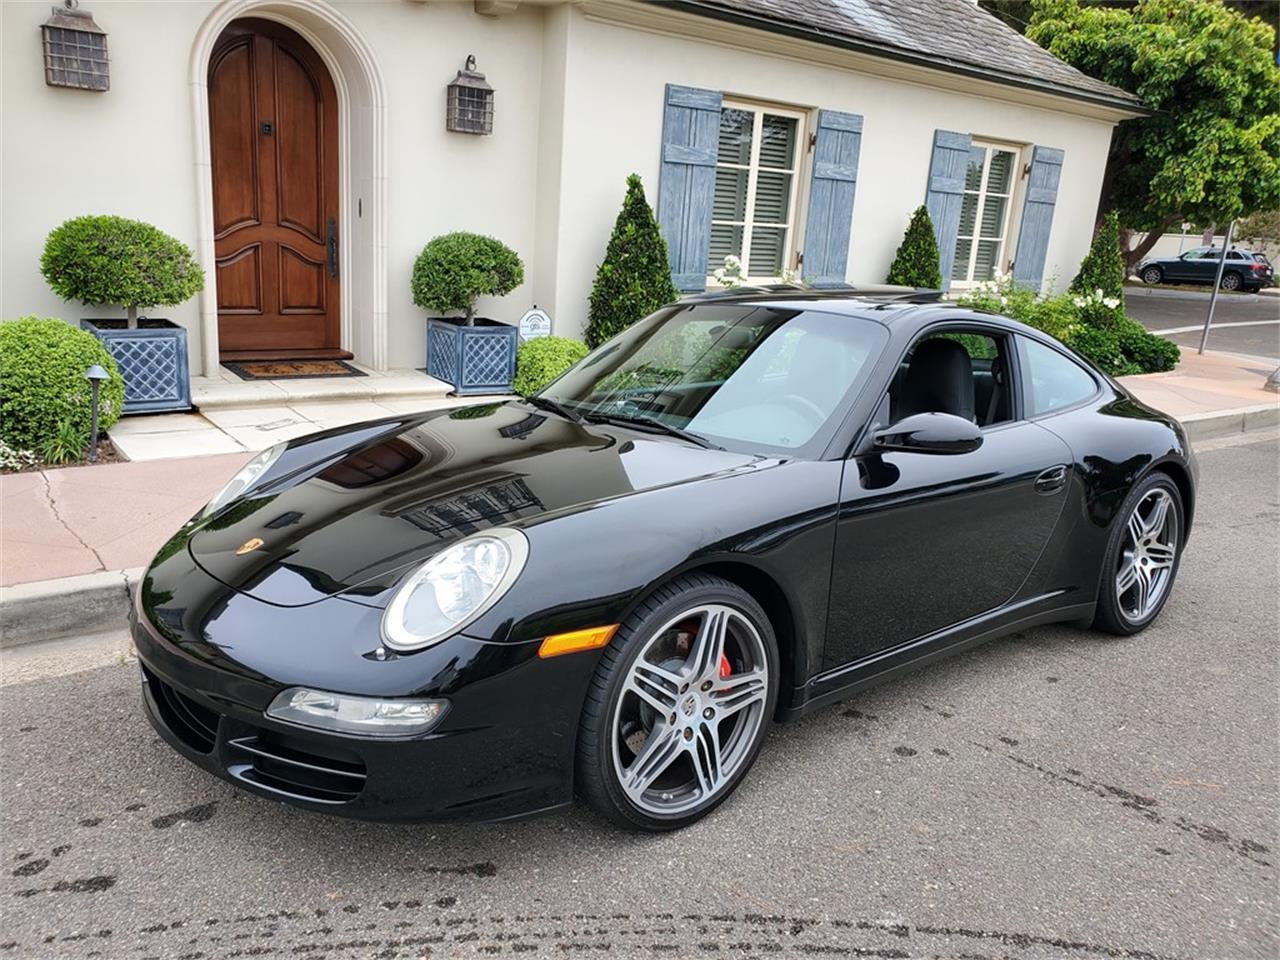 Large Picture of '07 Porsche 911 Carrera 4S - $29,990.00 Offered by Star European Inc. - QT04